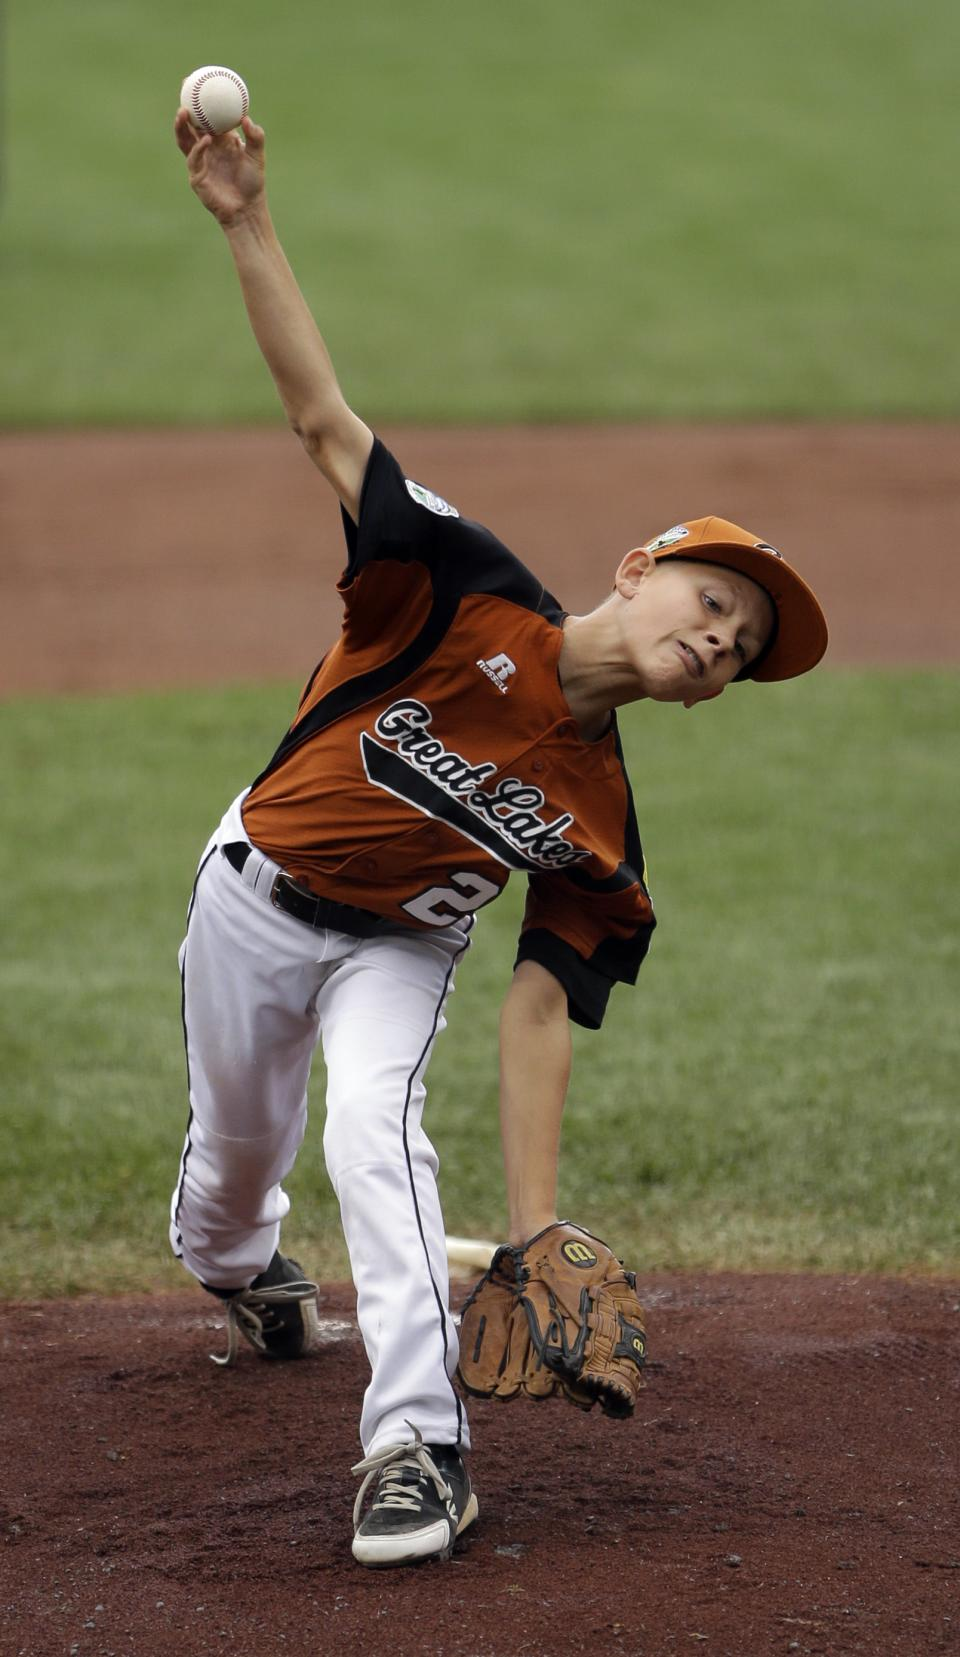 New Castle, Ind.'s Bryce Huntley pitches in the first inning of a pool play baseball game against San Antonio, Texas at the Little League World Series, Sunday, Aug. 19, 2012, in South Williamsport, Pa. Texas won 13-3. (AP Photo/Matt Slocum)